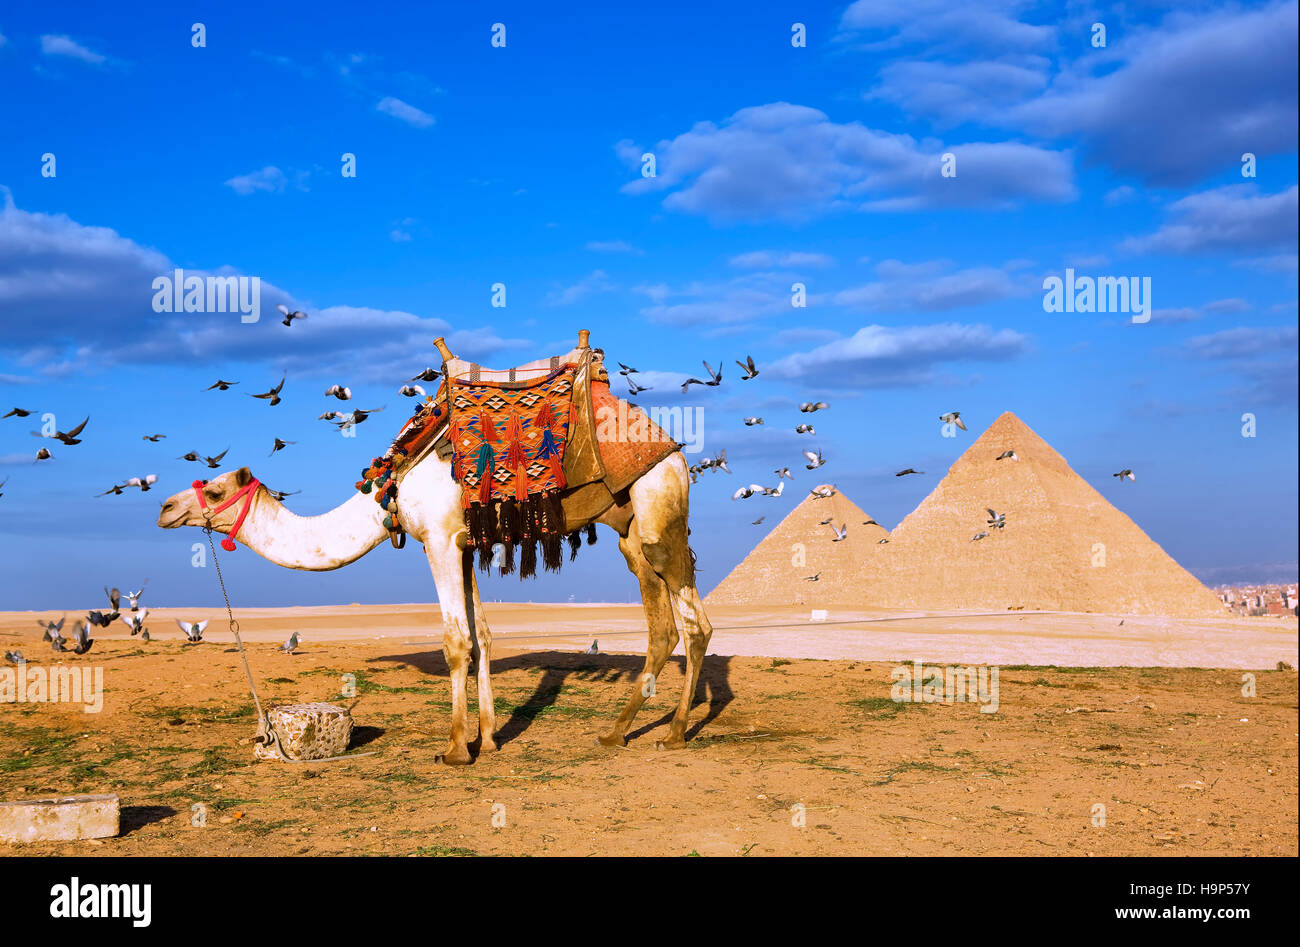 Pyramids of Giza, Cairo, Egypt - Stock Image